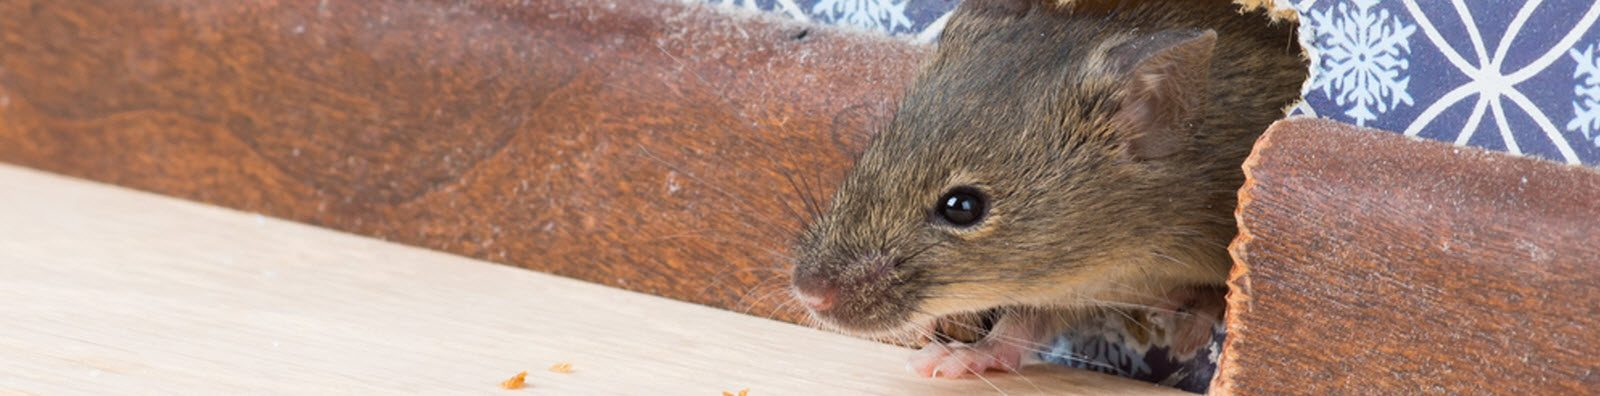 Norway & Roof Rats - Animal Pest Management Services, Inc